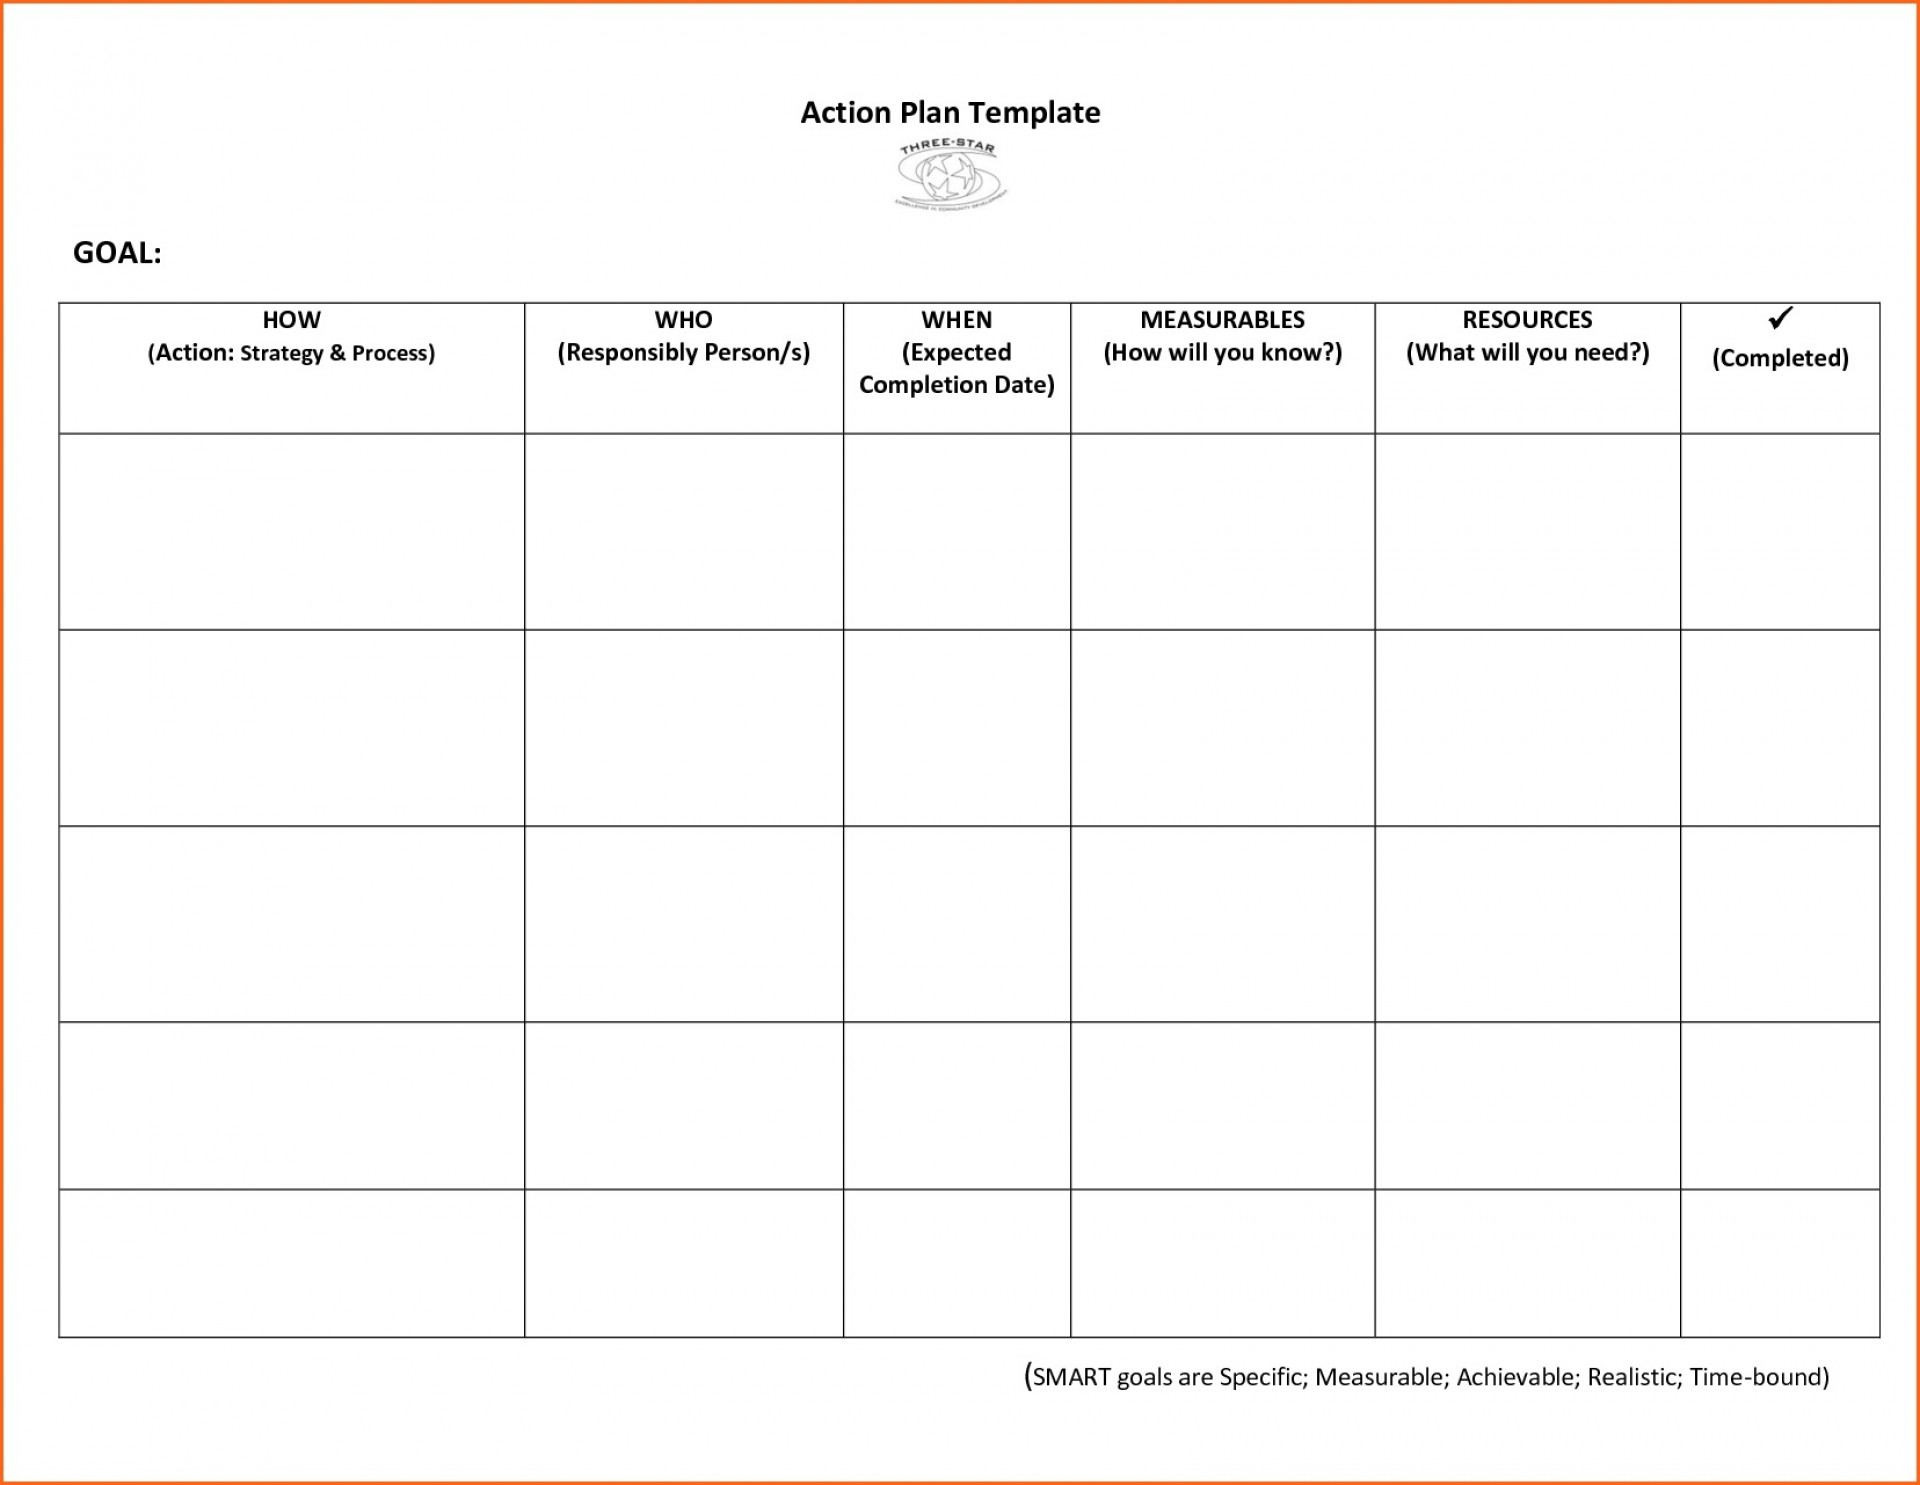 001 Astounding Smart Action Plan Template Image  Nursing Example For Busines Free1920